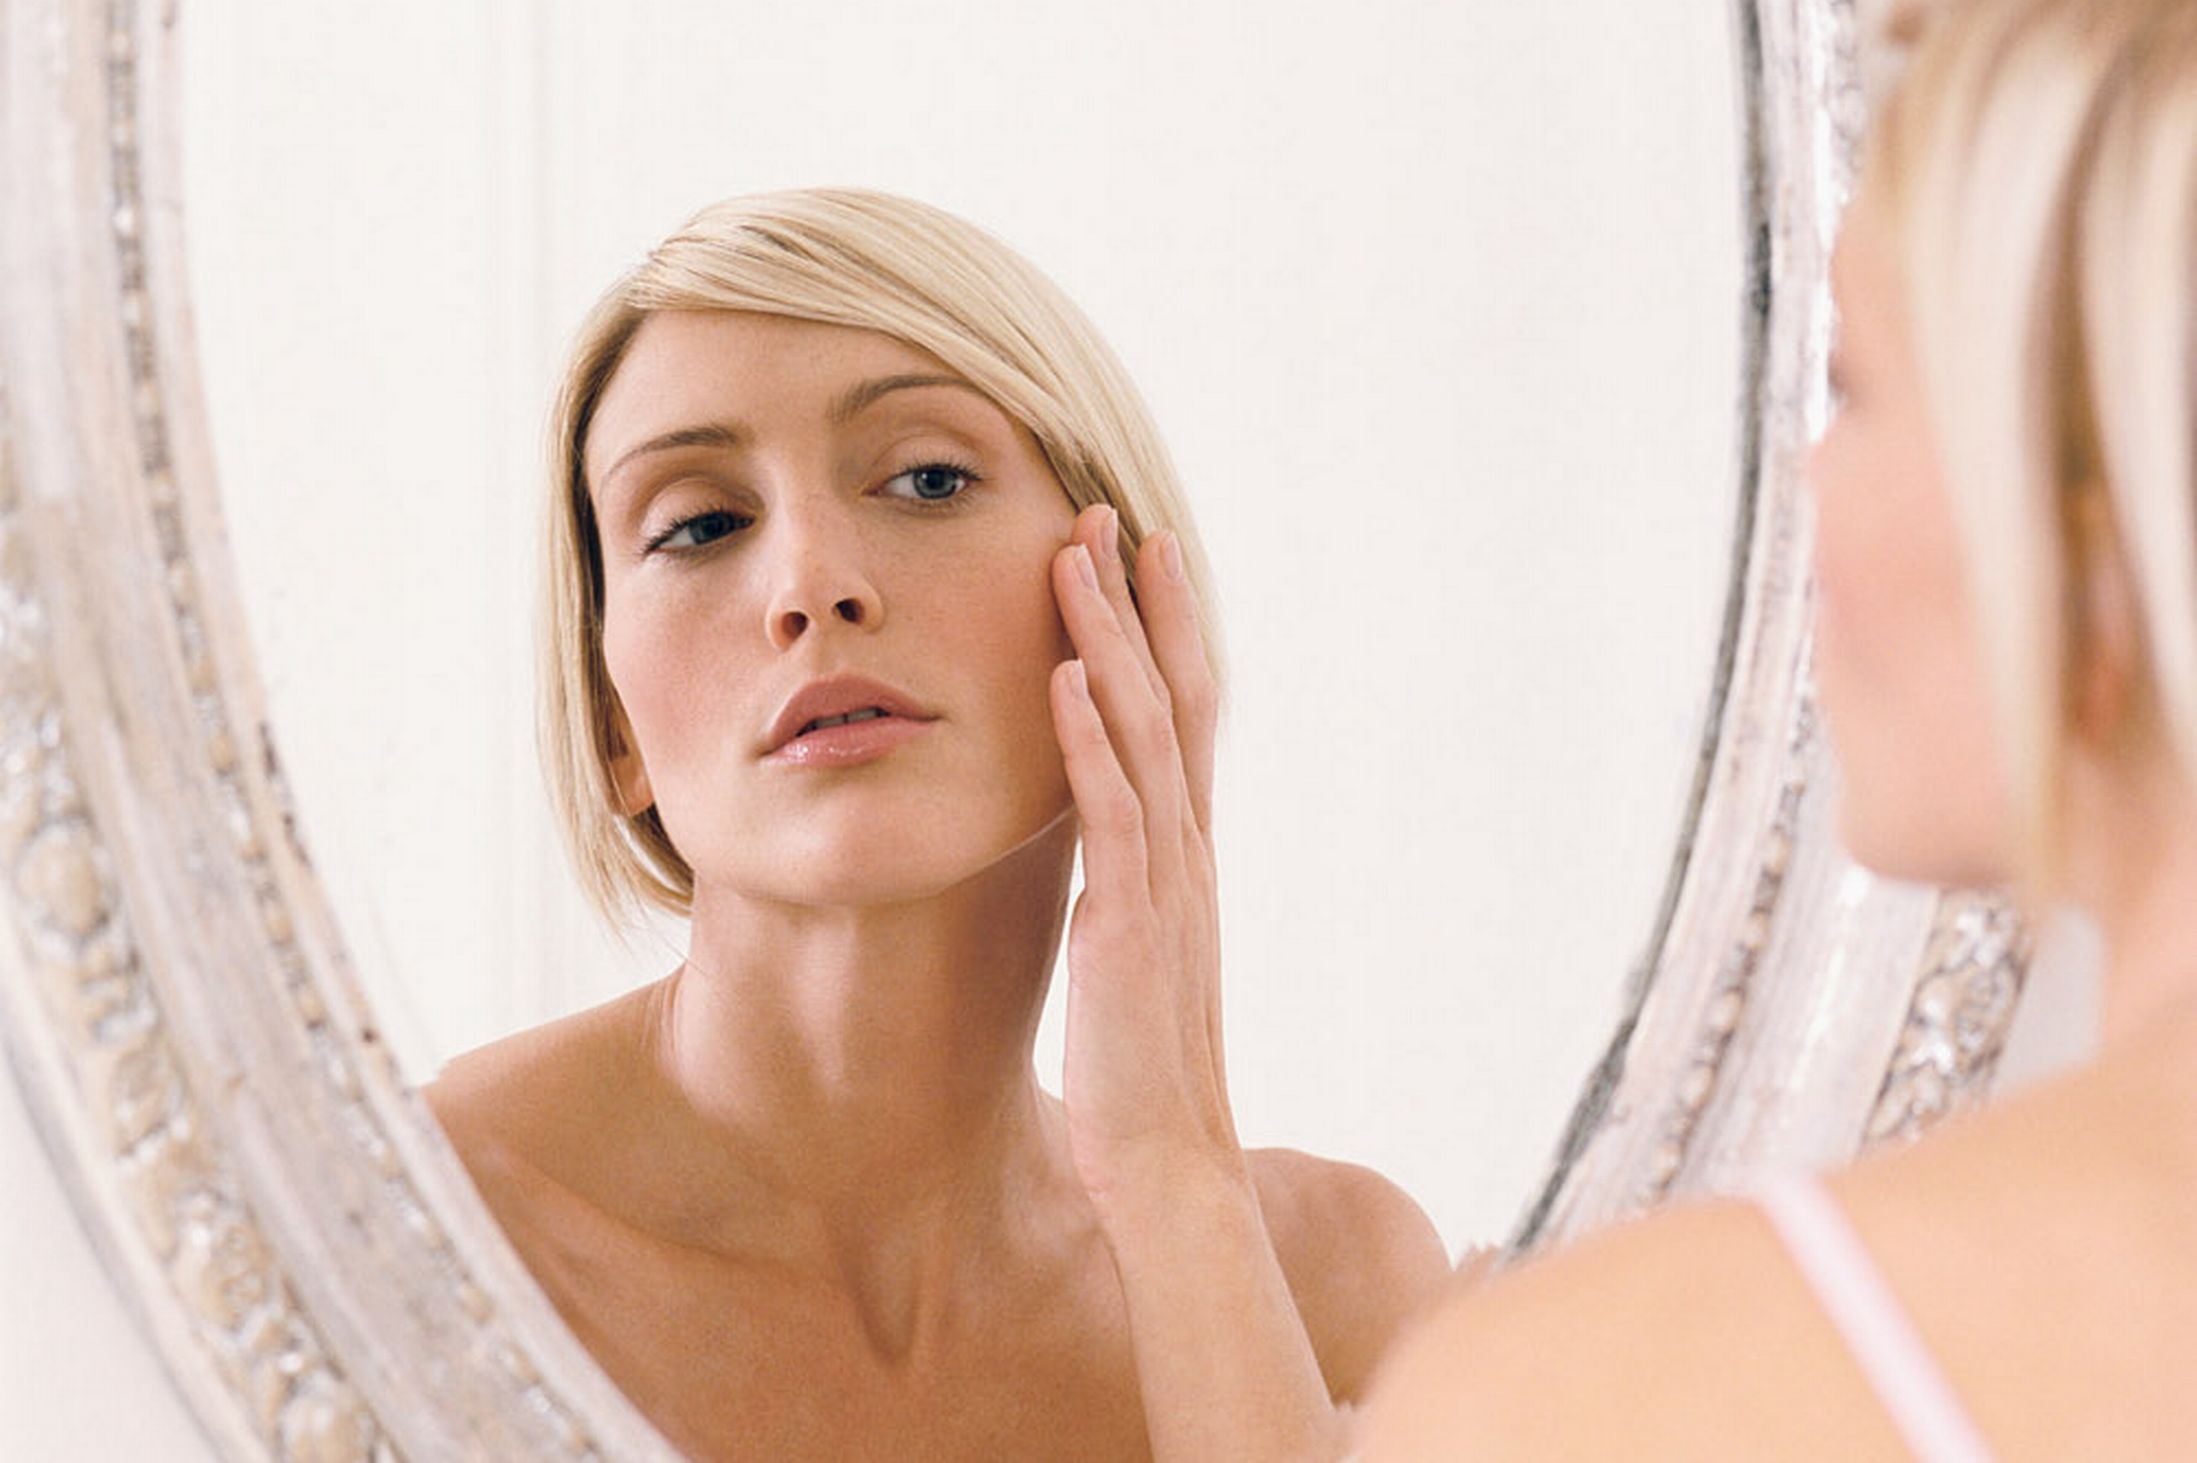 Can plastic surgery be holistic? | Well+Good